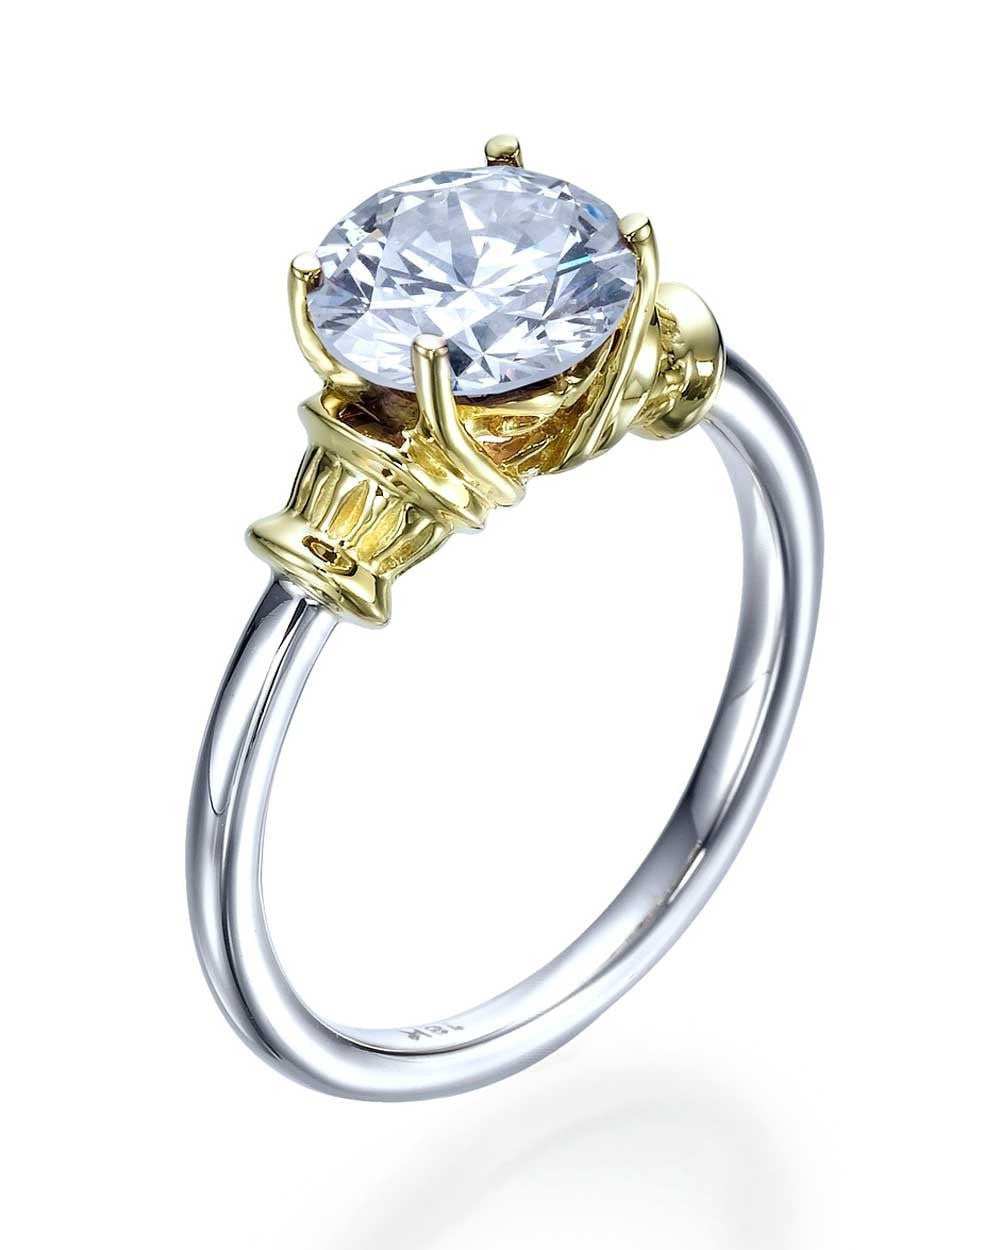 Engagement Rings Two-Tone Gold Unique Vintage Antique Engagement Ring - 2ct Diamond